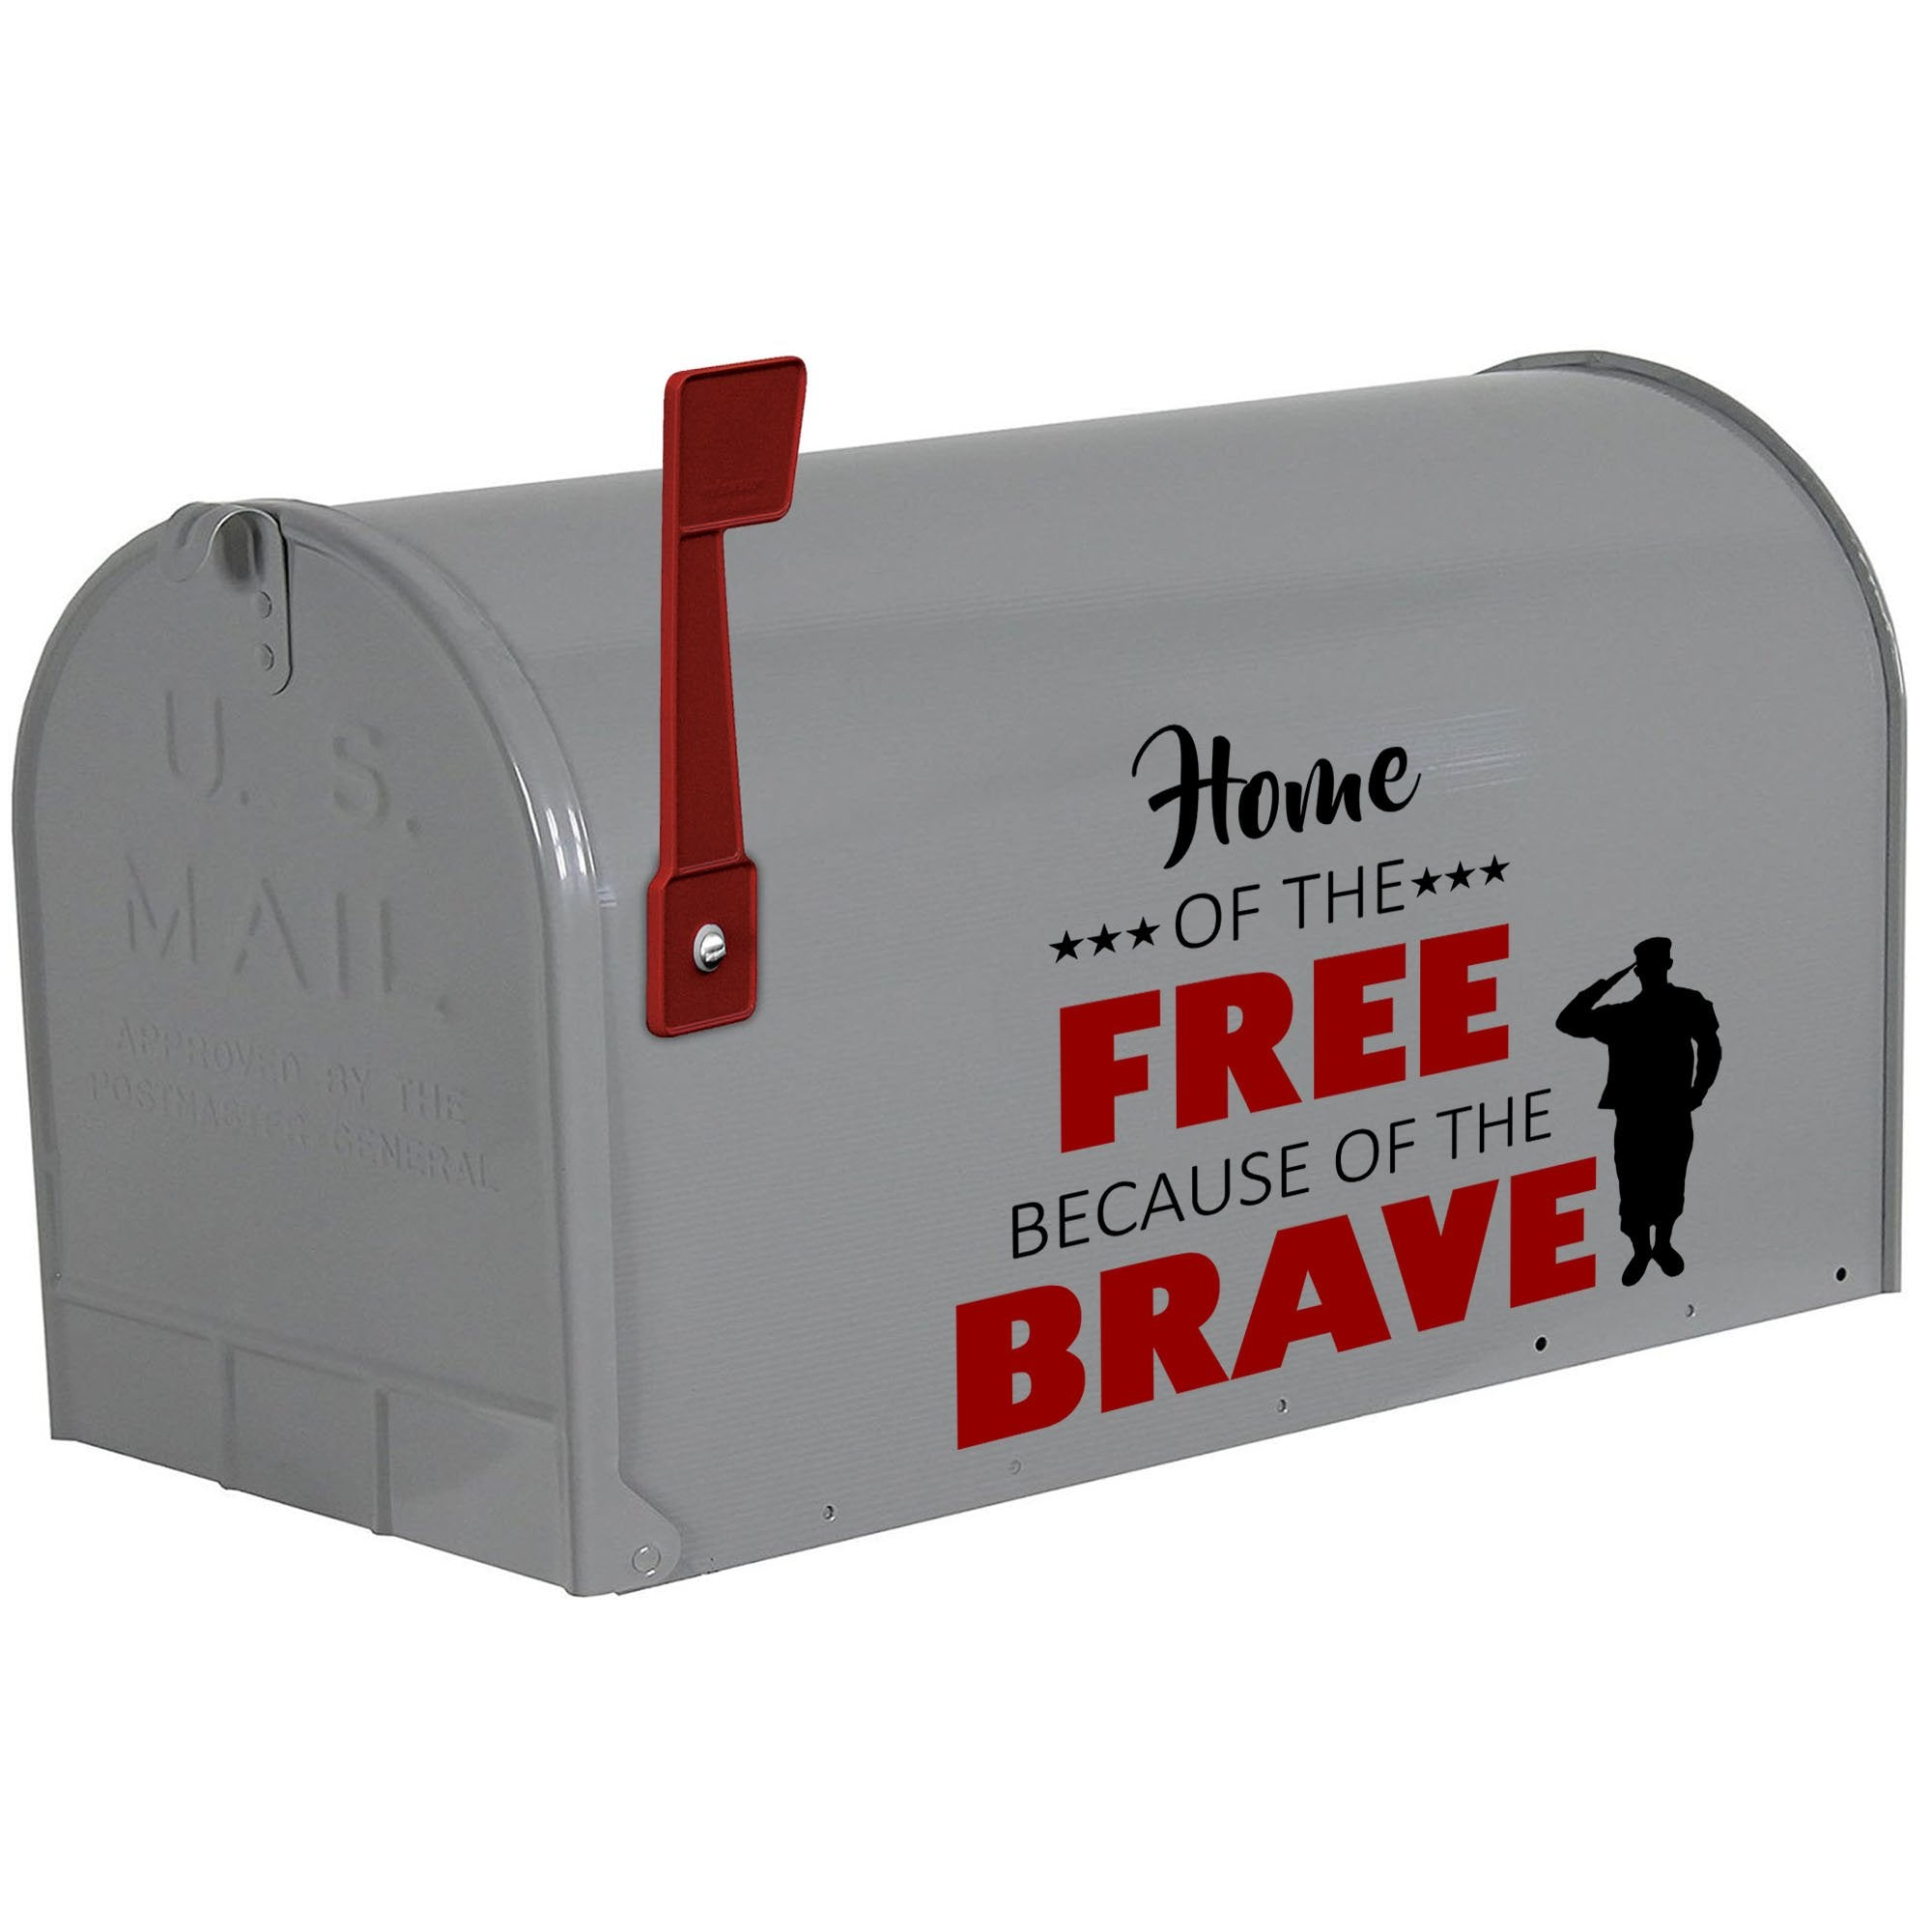 VWAQ Home of The Free Because of The Brave Decal for Mailbox Patriotic Decorations - VWAQ Vinyl Wall Art Quotes and Prints